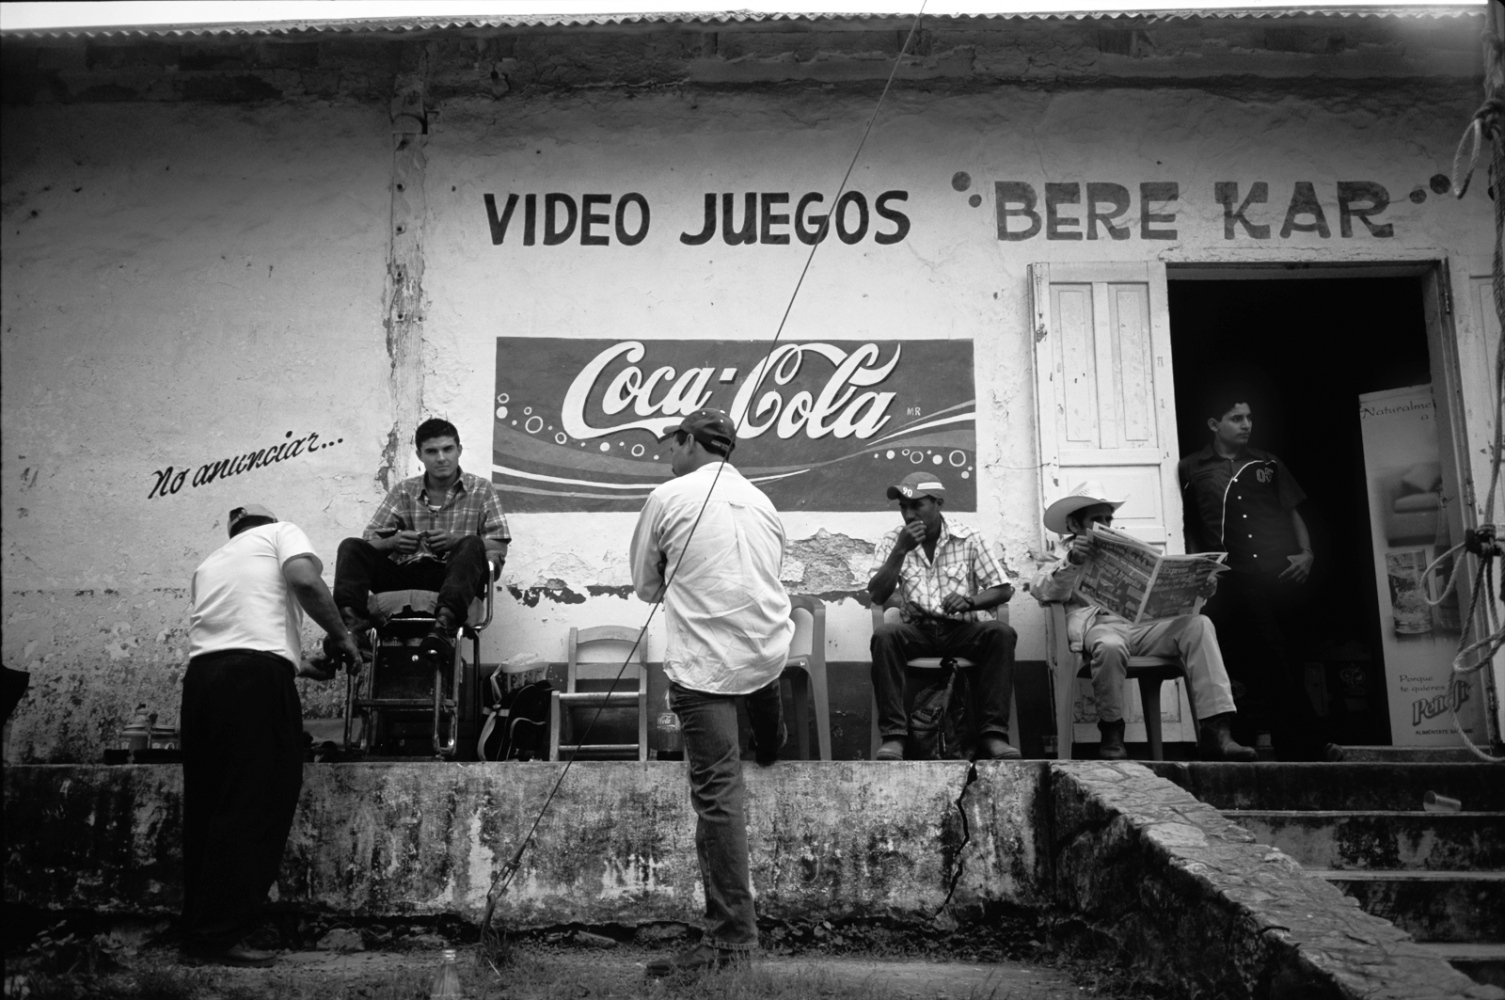 Plaza, Ozuluama, Veracruz, Mexico has an abundance of wonderful tropical fruits yearound. Traditionally people used to drink fruits juices, but with the advent of global adveritising, coca-cola has become the most consumed beverage allover Mexico. 2009 ©Sylvia de Swaan